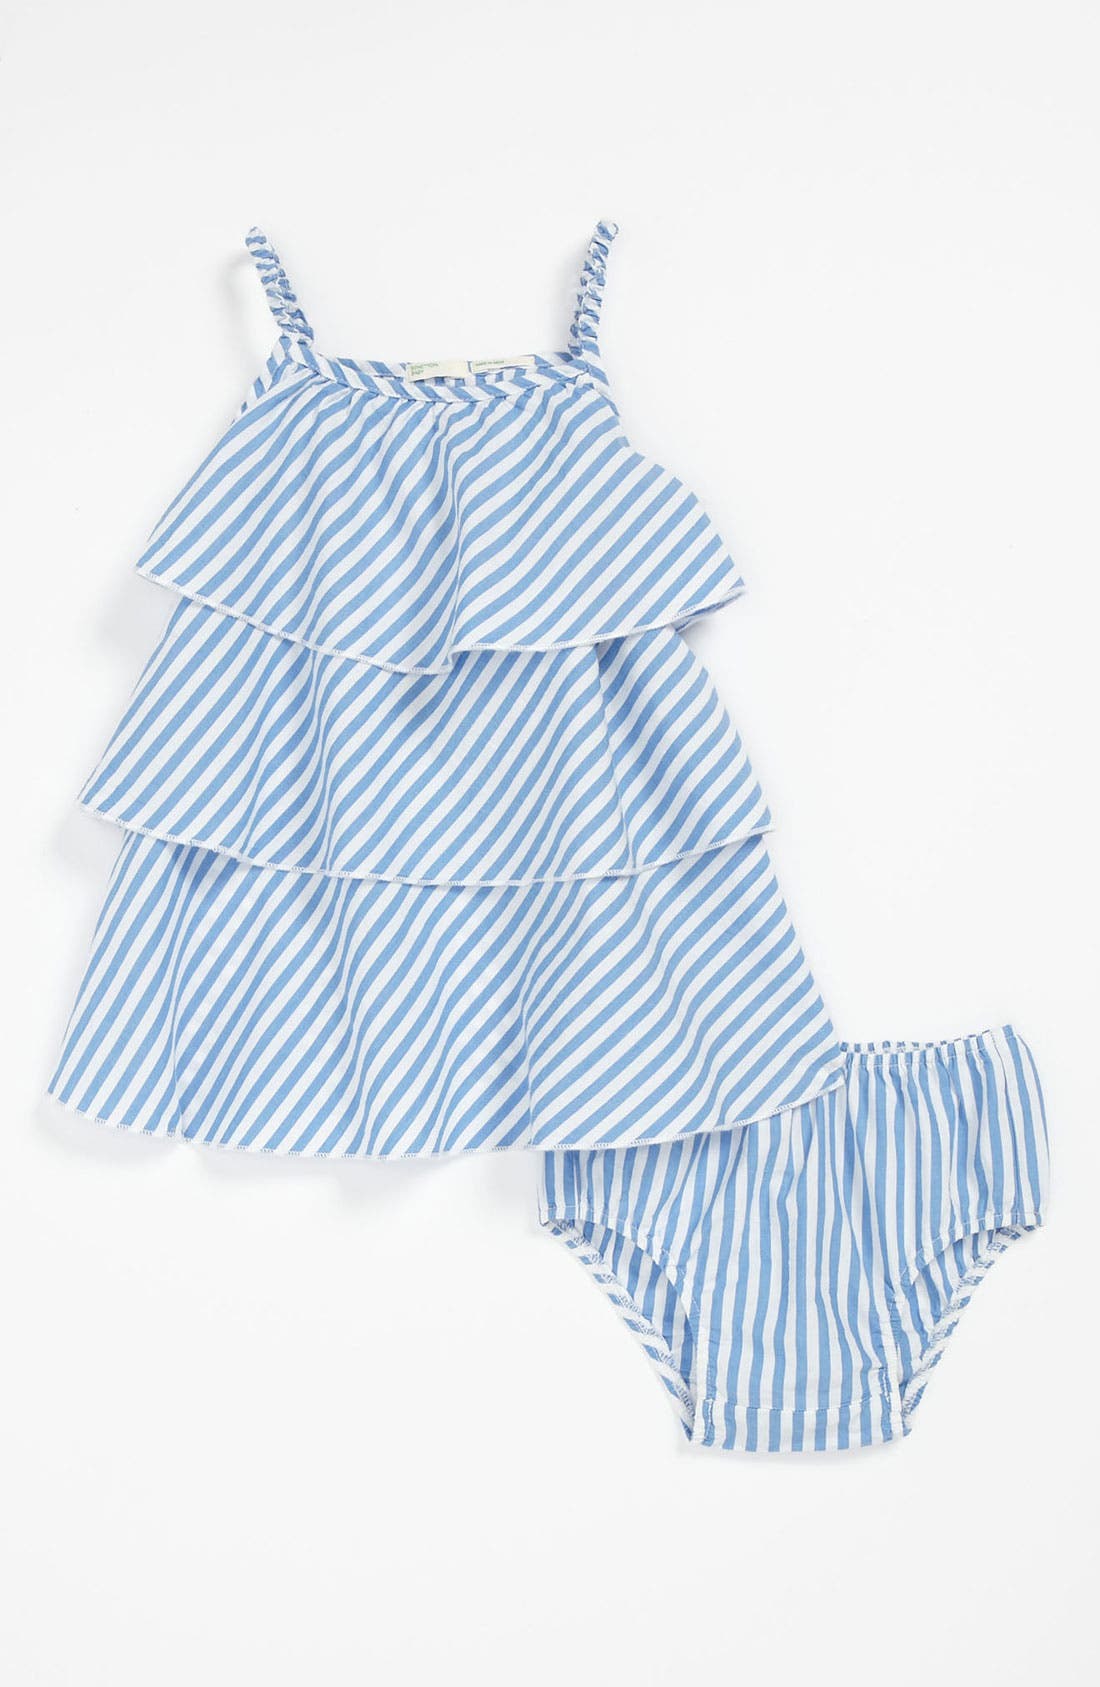 Alternate Image 1 Selected - United Colors of Benetton Kids Stripe Dress & Bloomers (Baby)